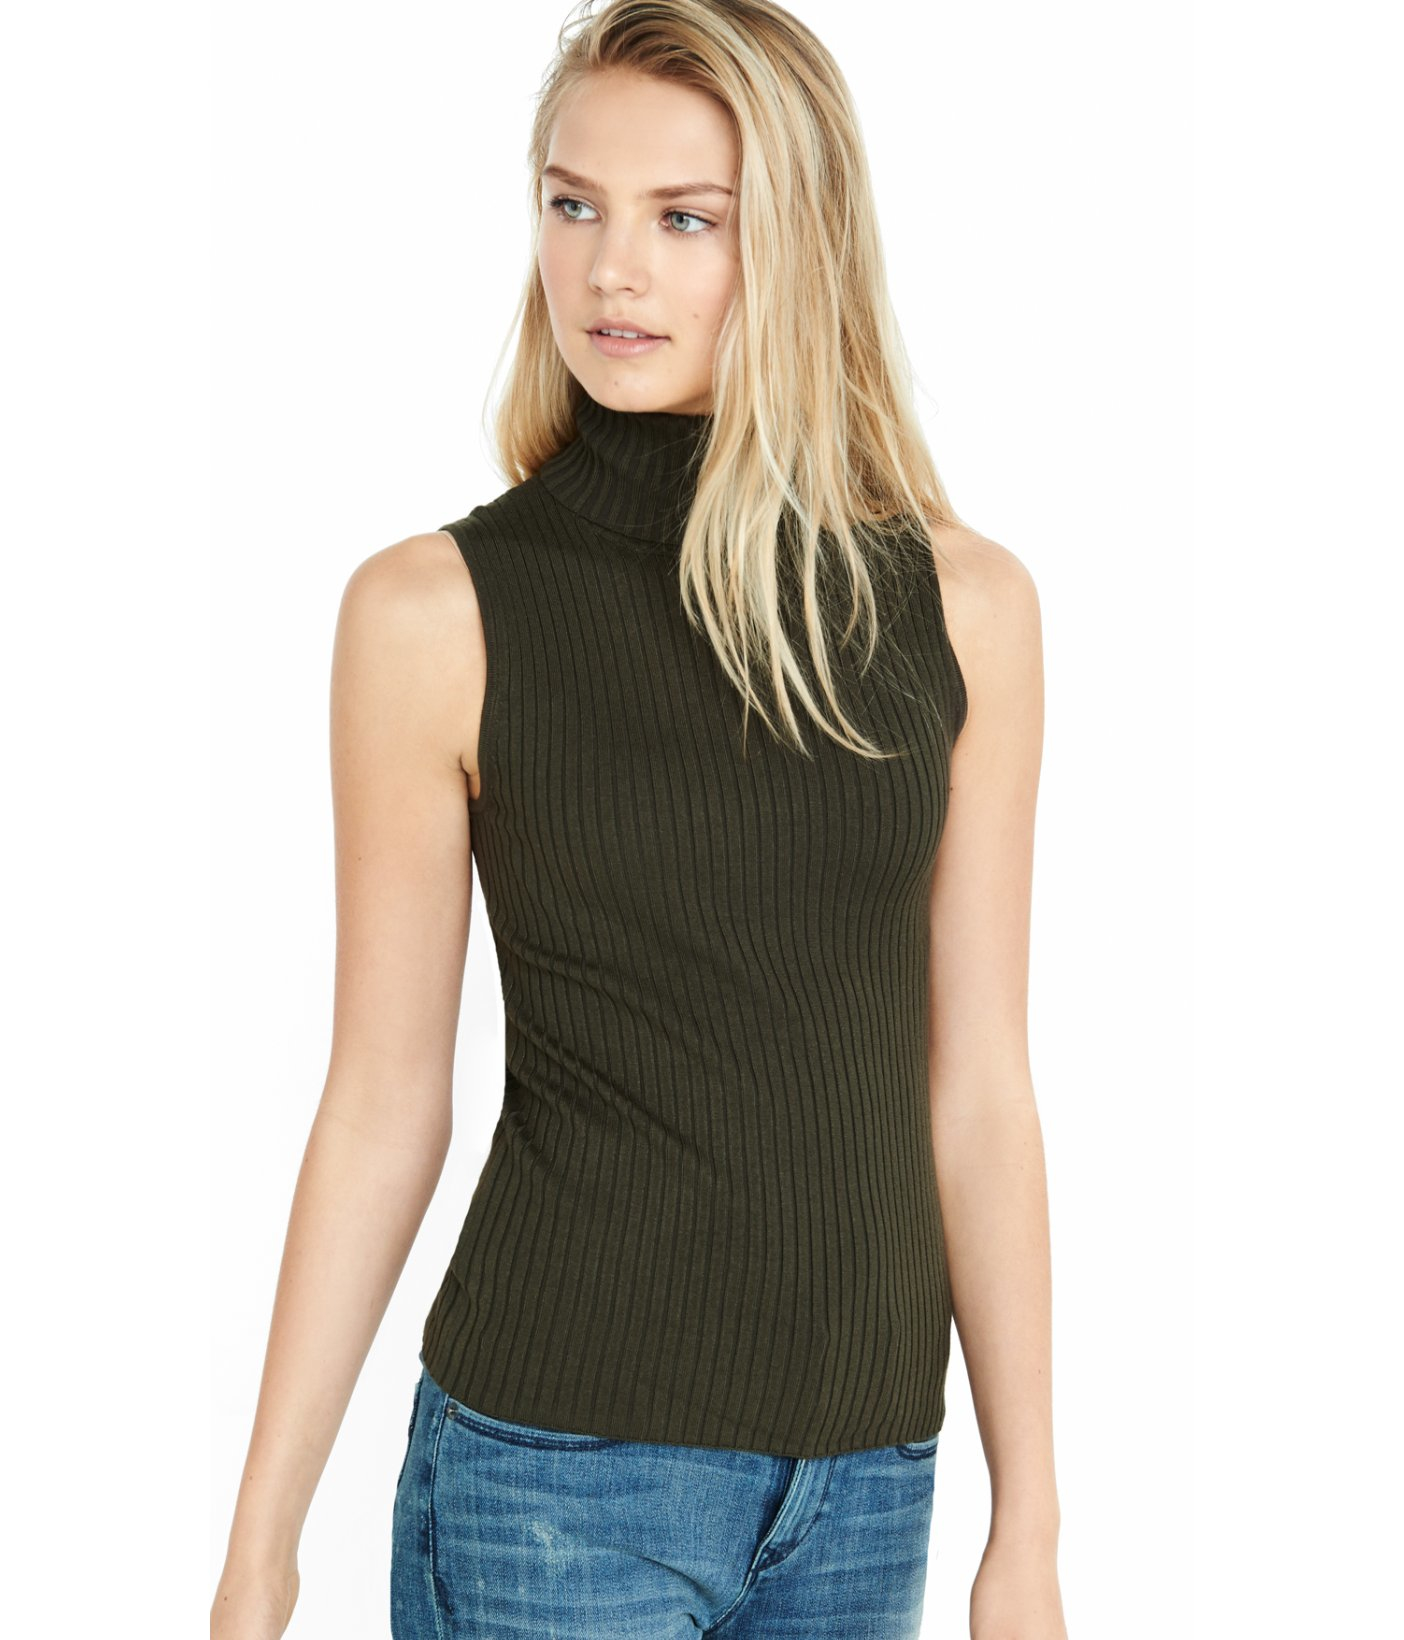 613b6d7280b1 Lyst - Express Sleeveless Ribbed Turtleneck Sweater in Green